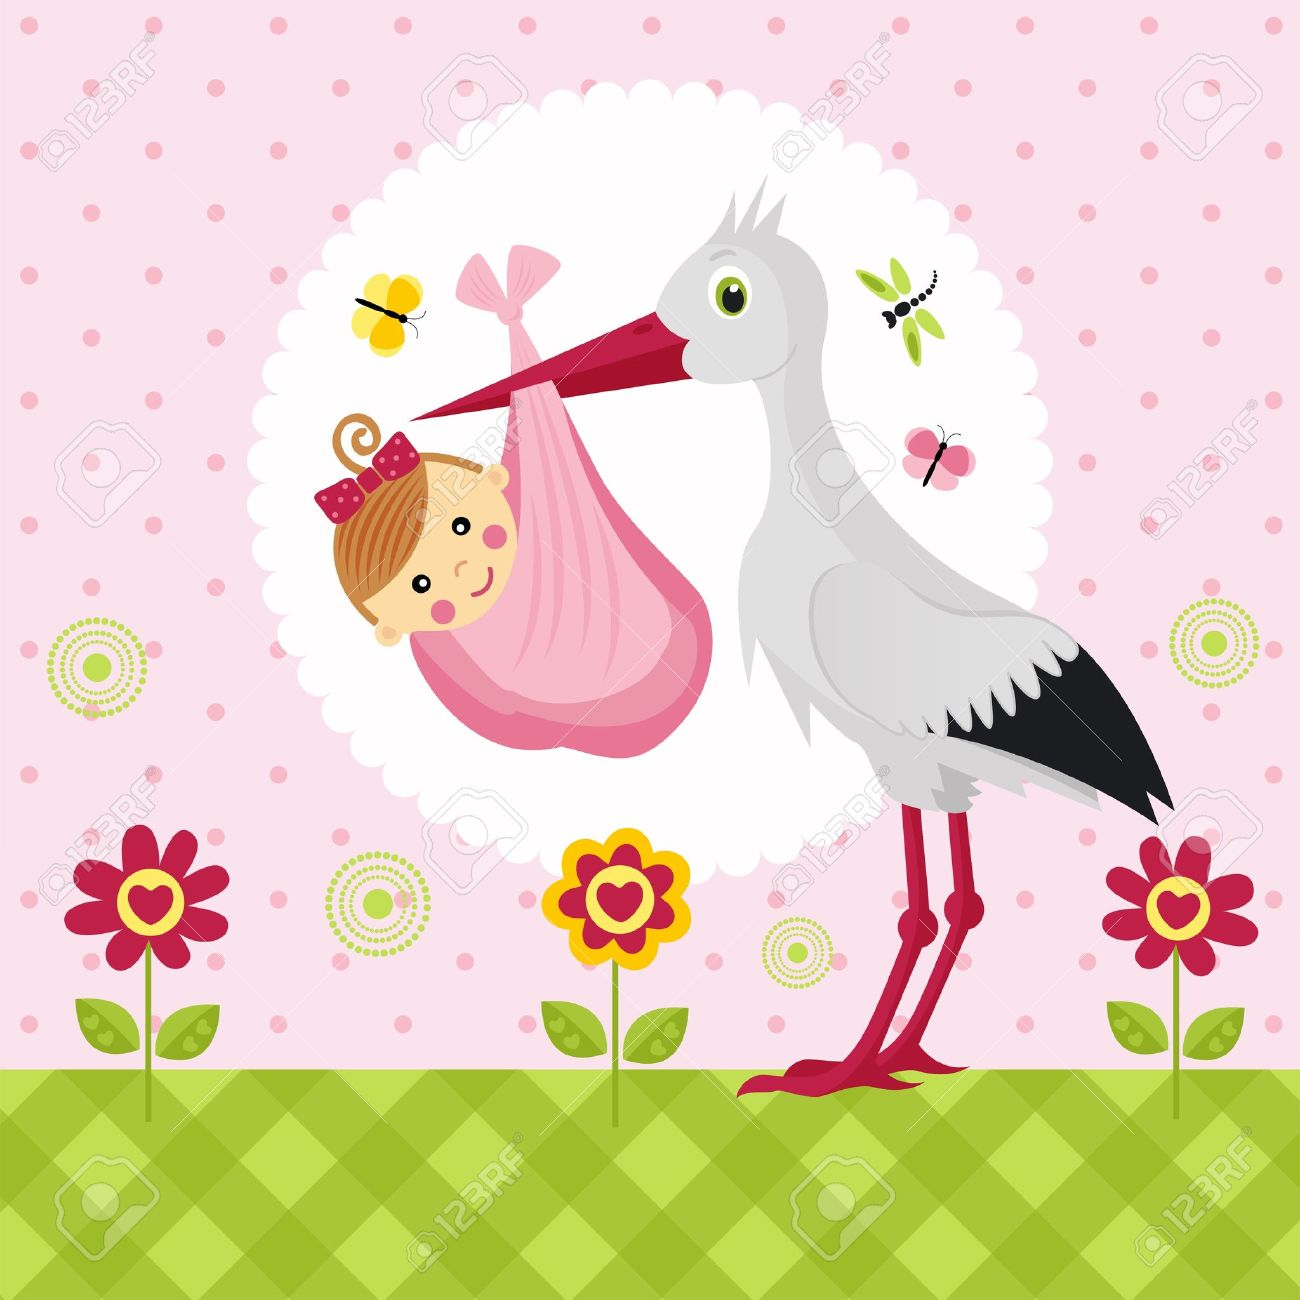 Baby girl stork clipart clipart transparent library Stork With A Baby Girl In A Bag Royalty Free Cliparts, Vectors ... clipart transparent library